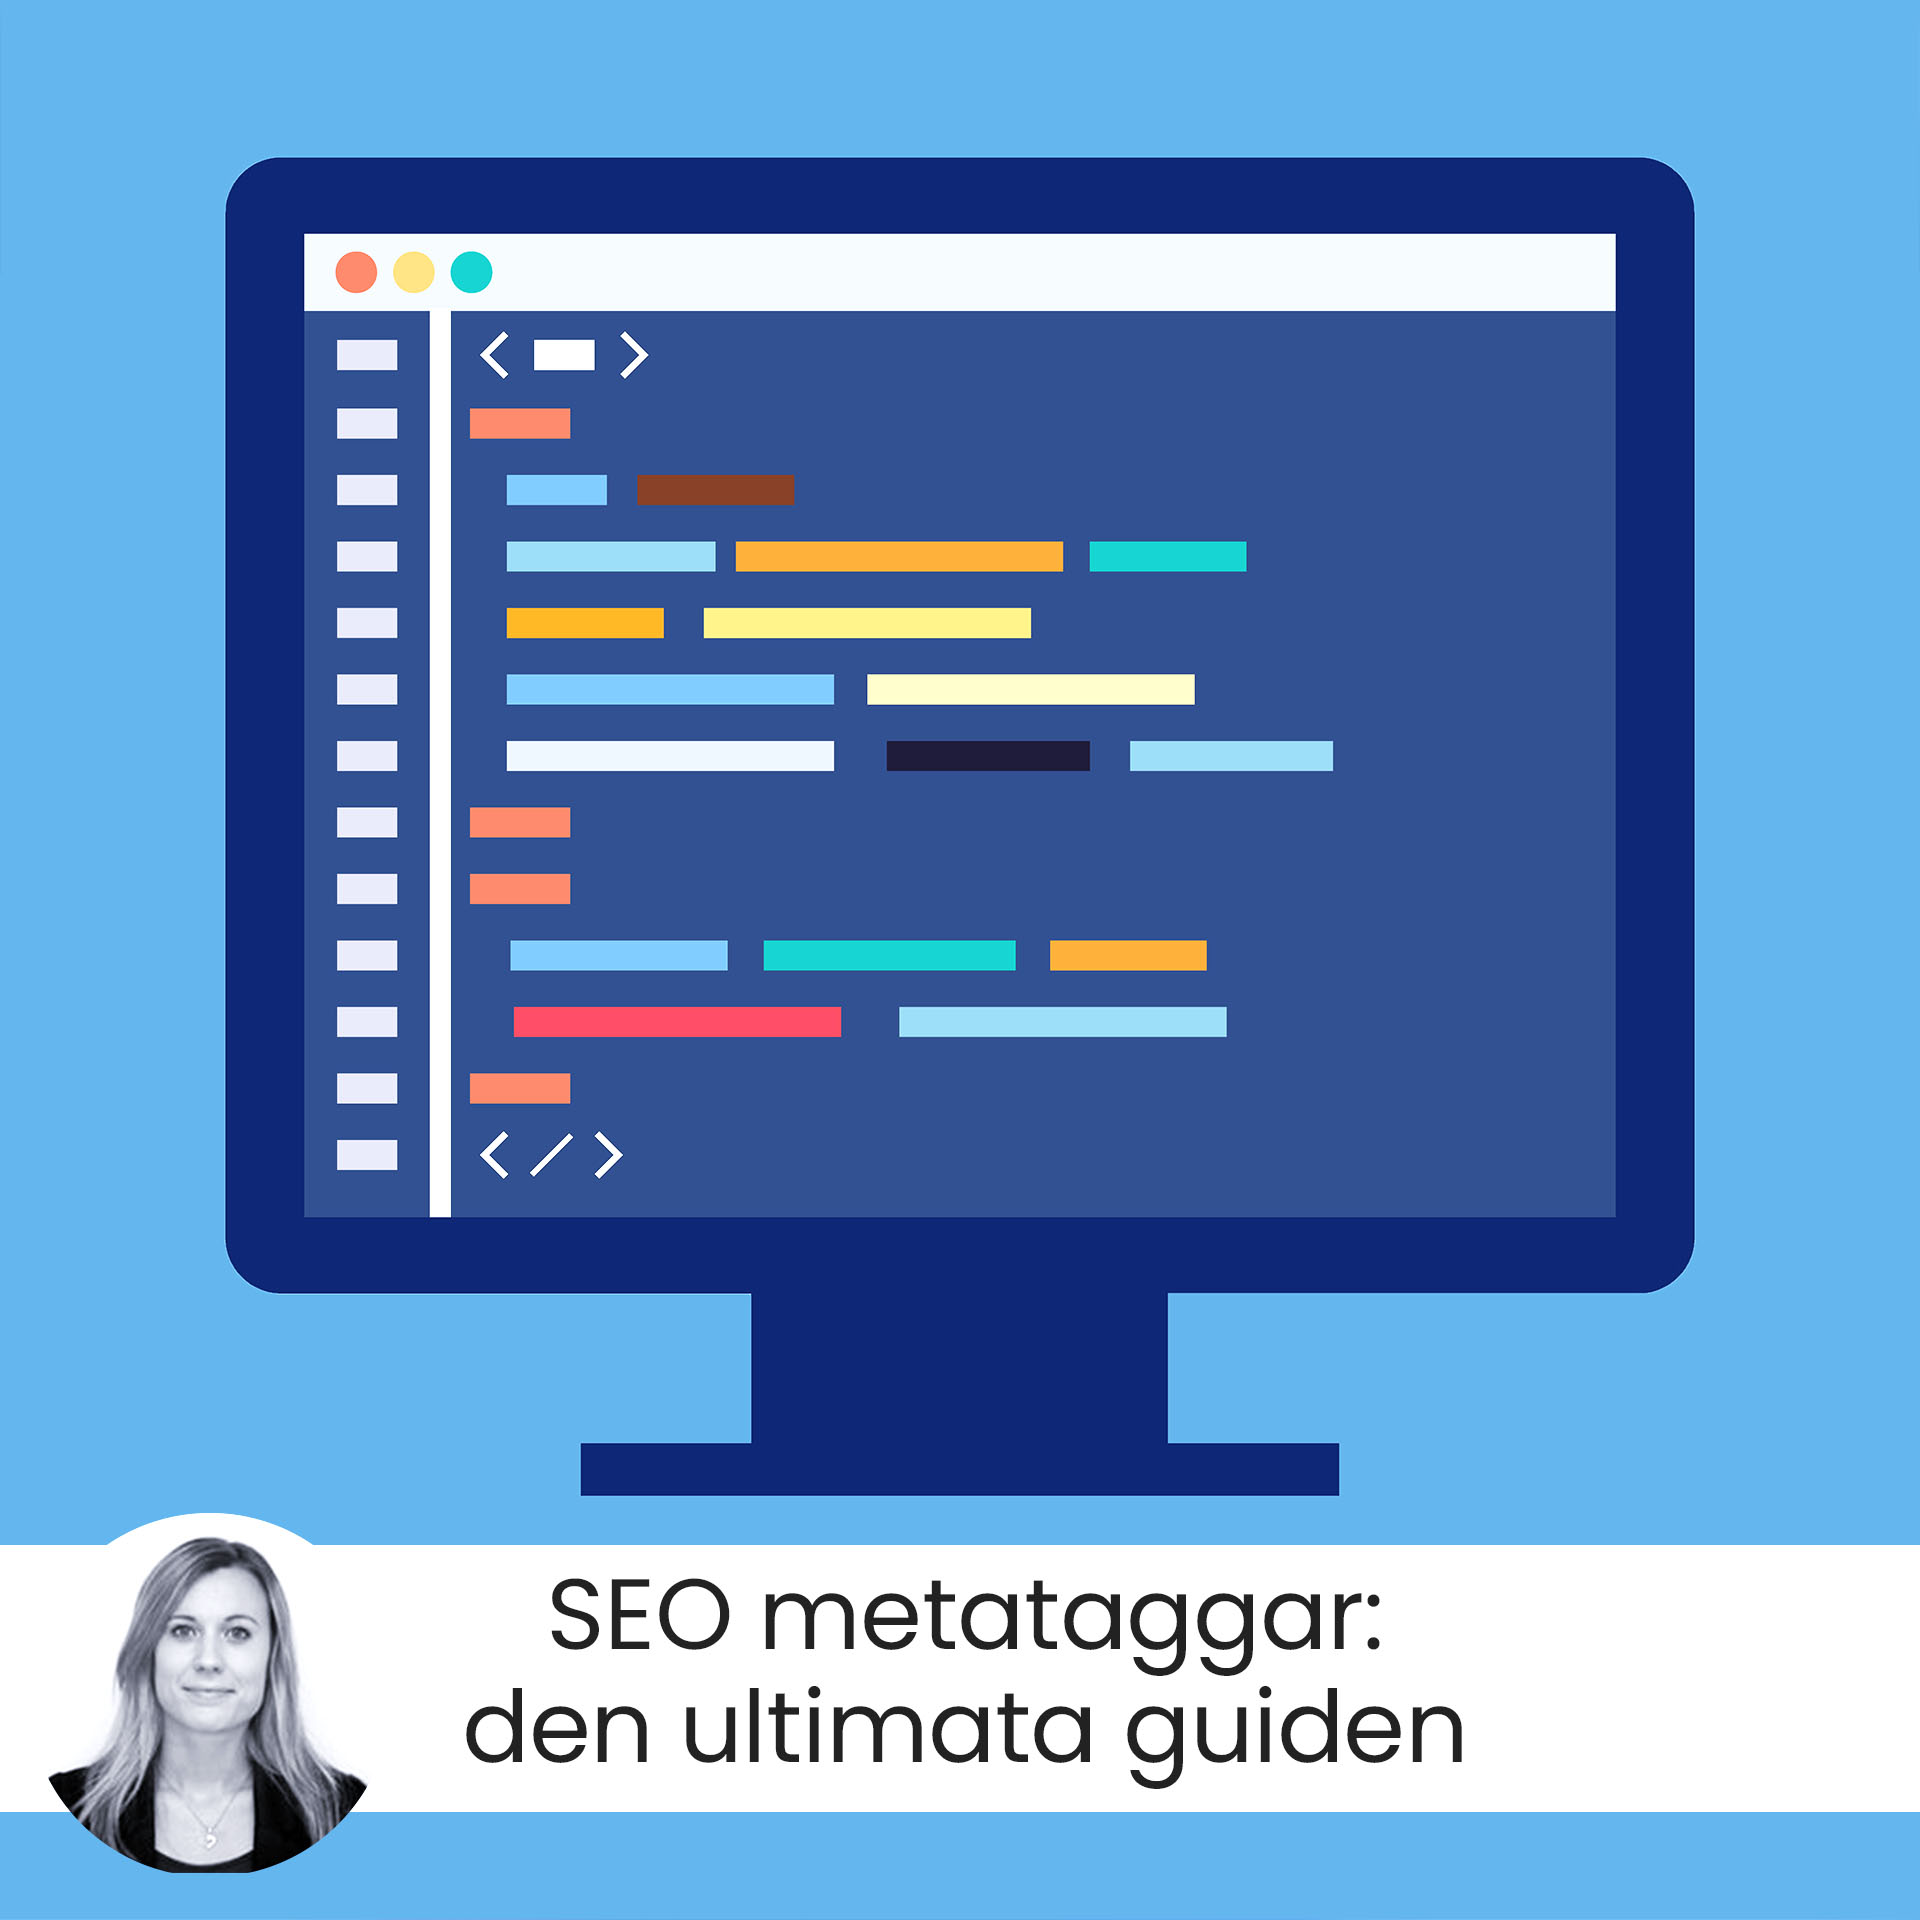 SEO metataggar den ultimata guiden wordpress-34